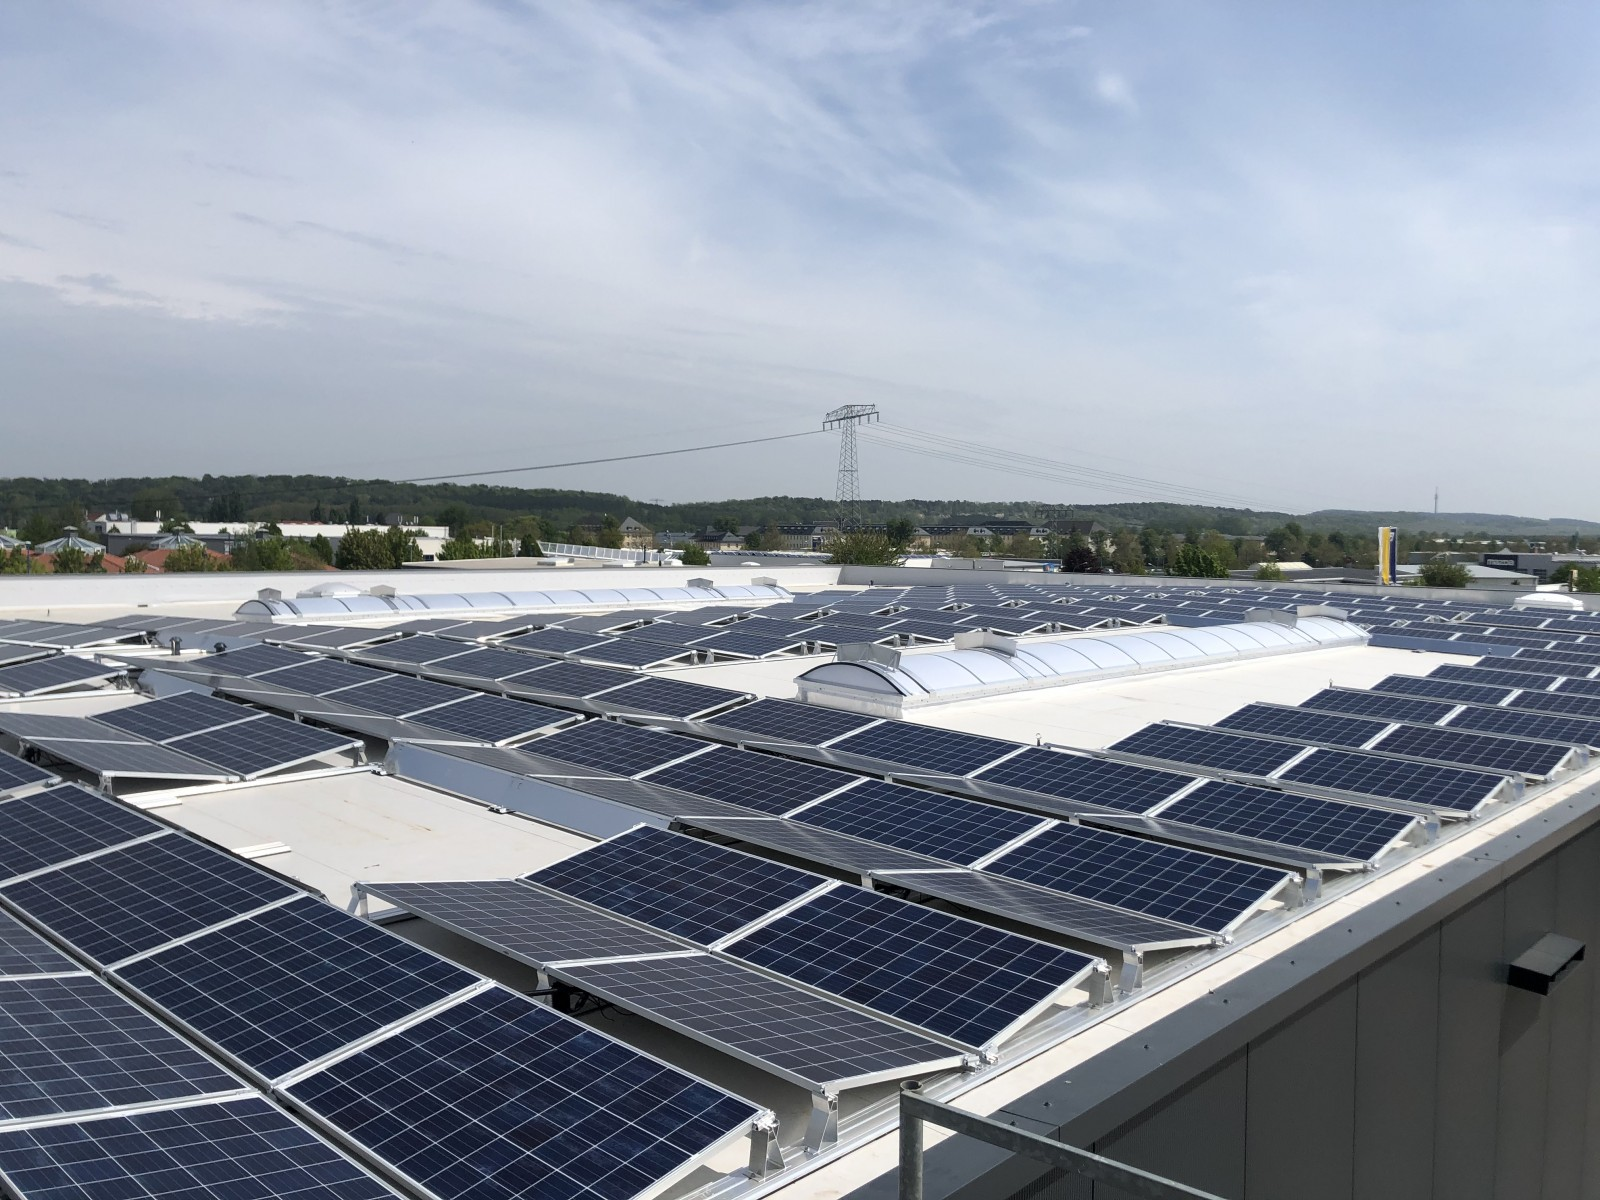 The installation of the photovoltaic system is complete.